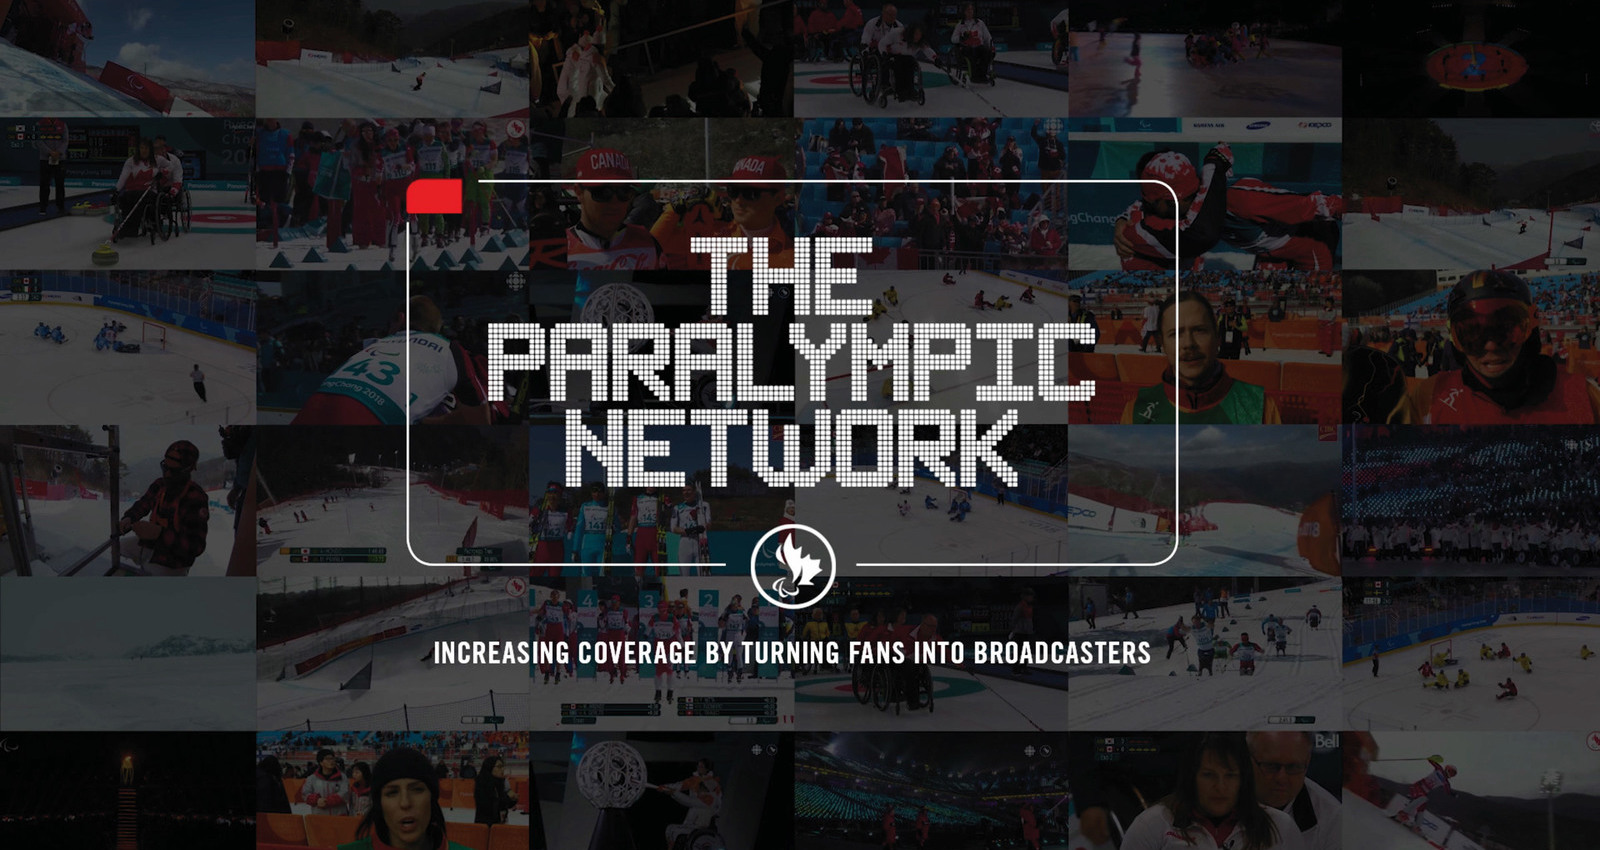 The Paralympic Network